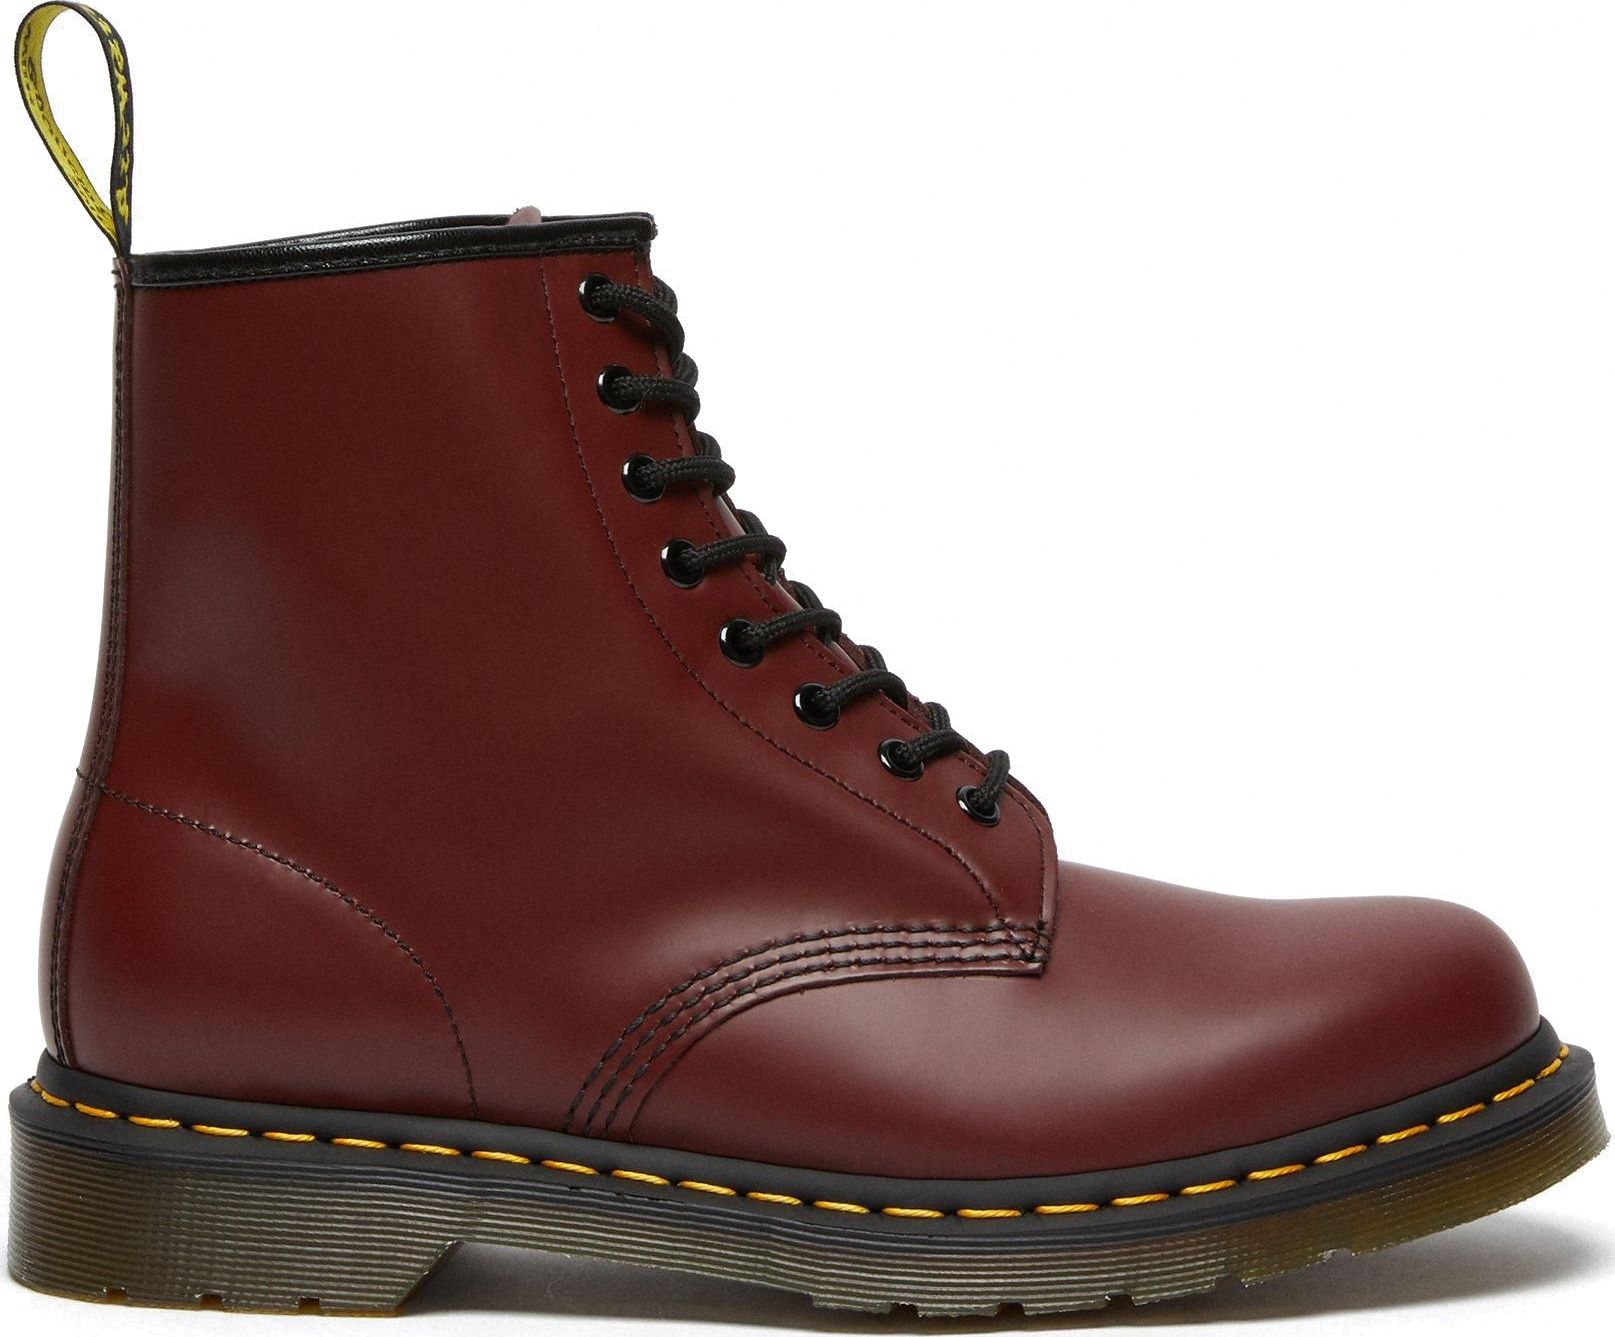 Dr. MARTENS 1460 Cherry Red 39